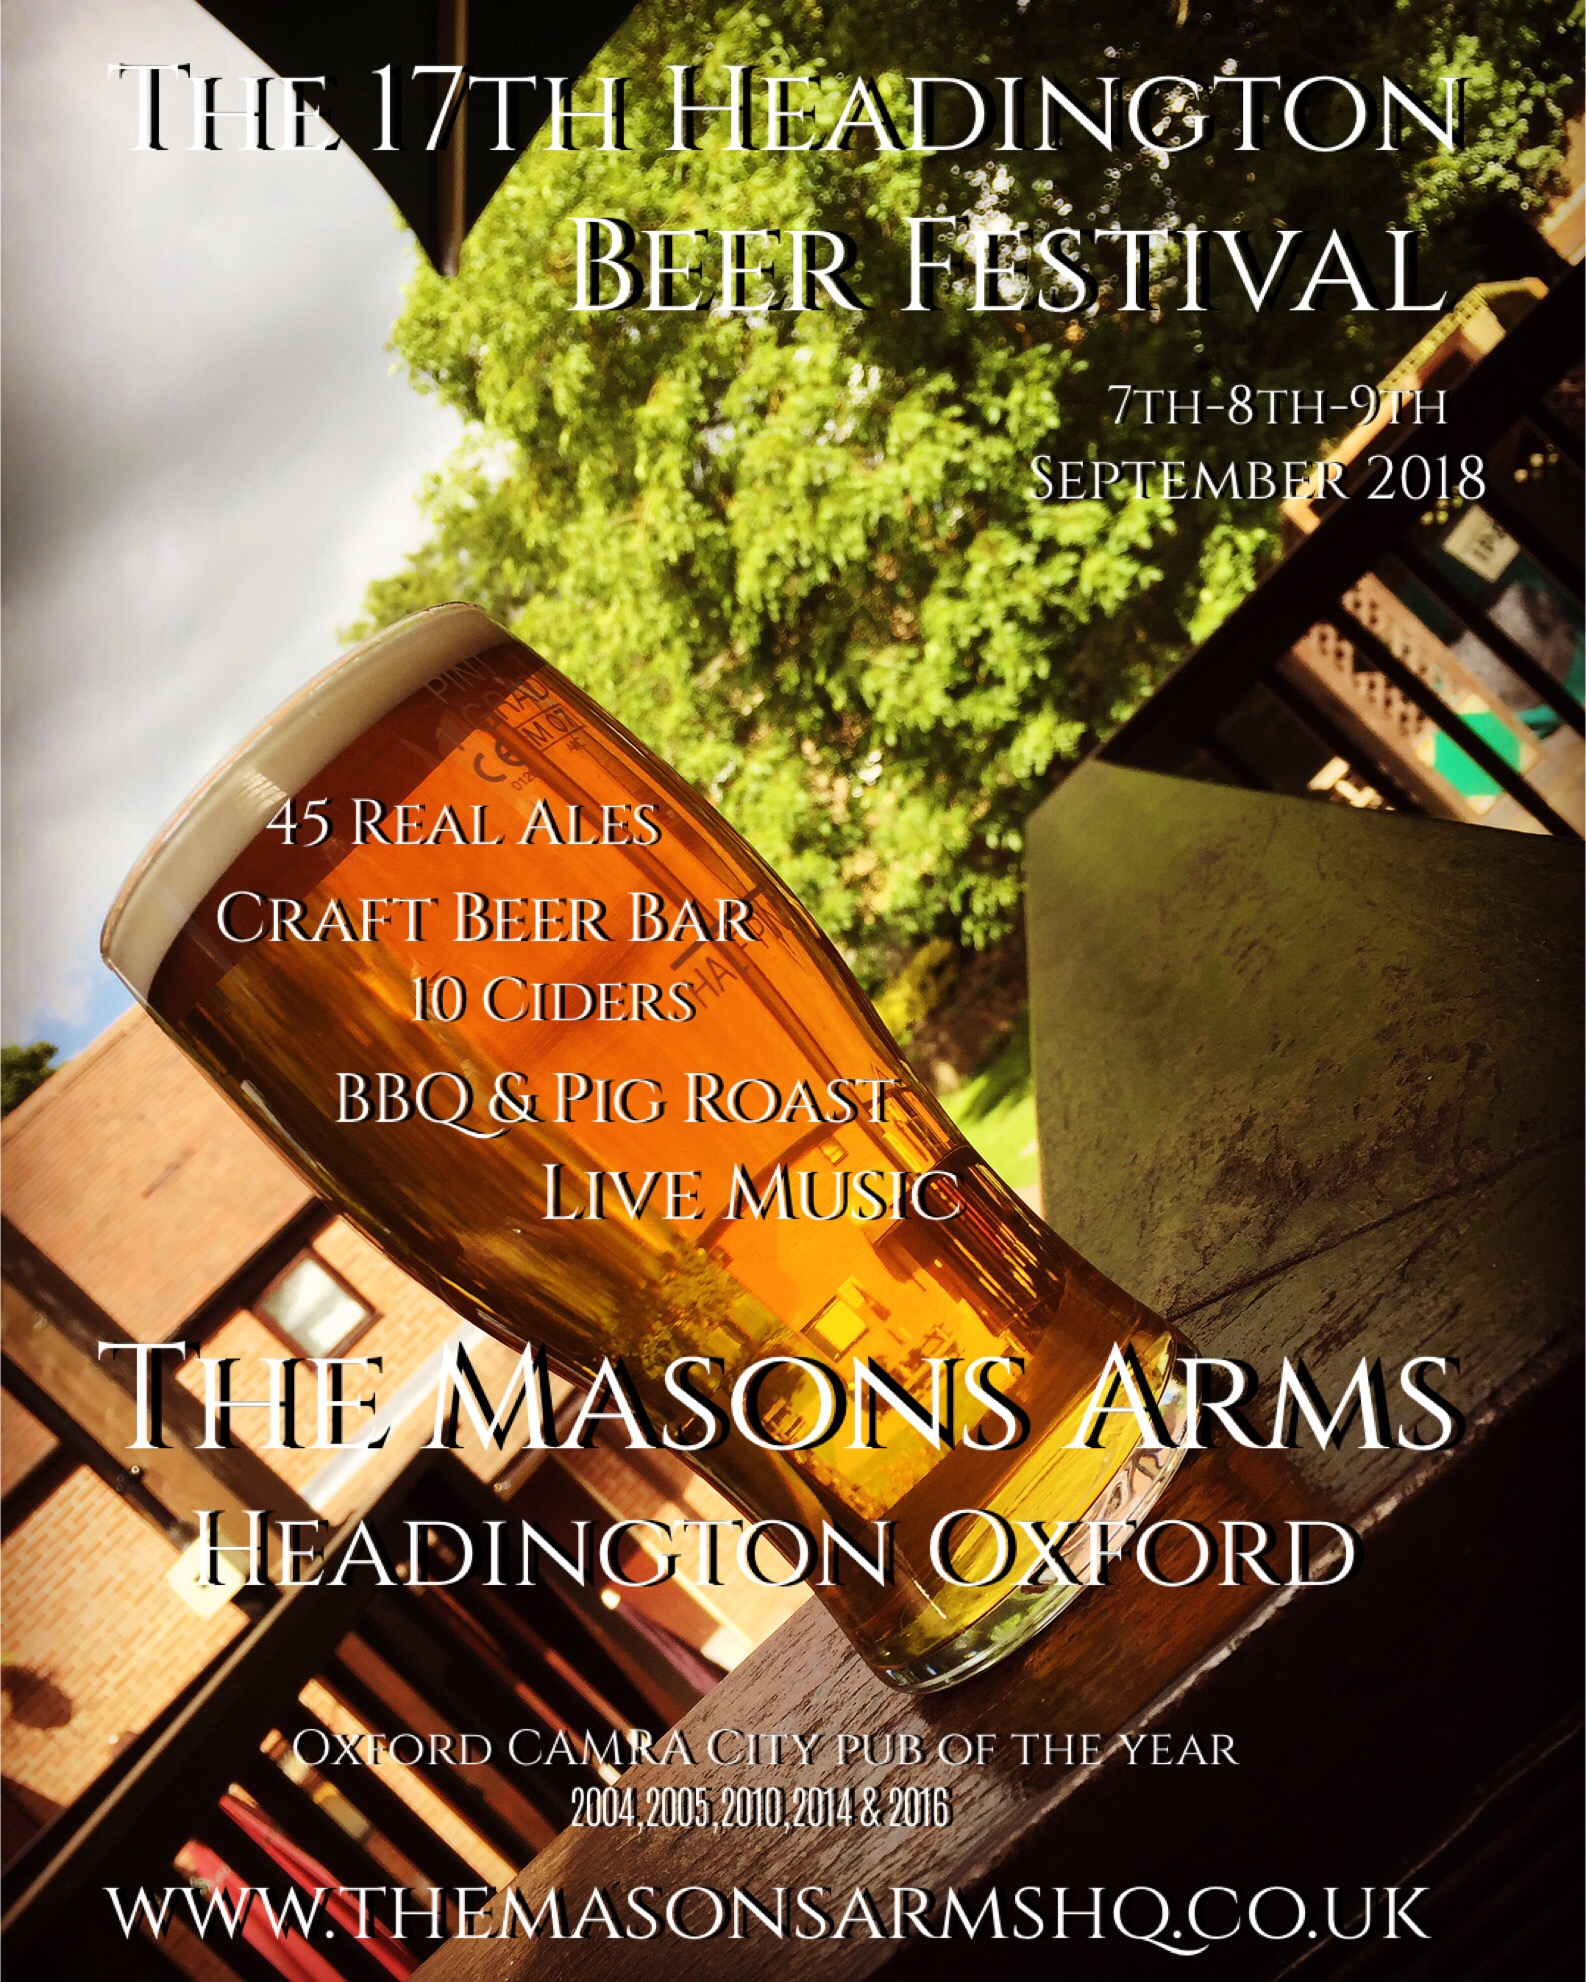 The 17th Headington Beer Festival